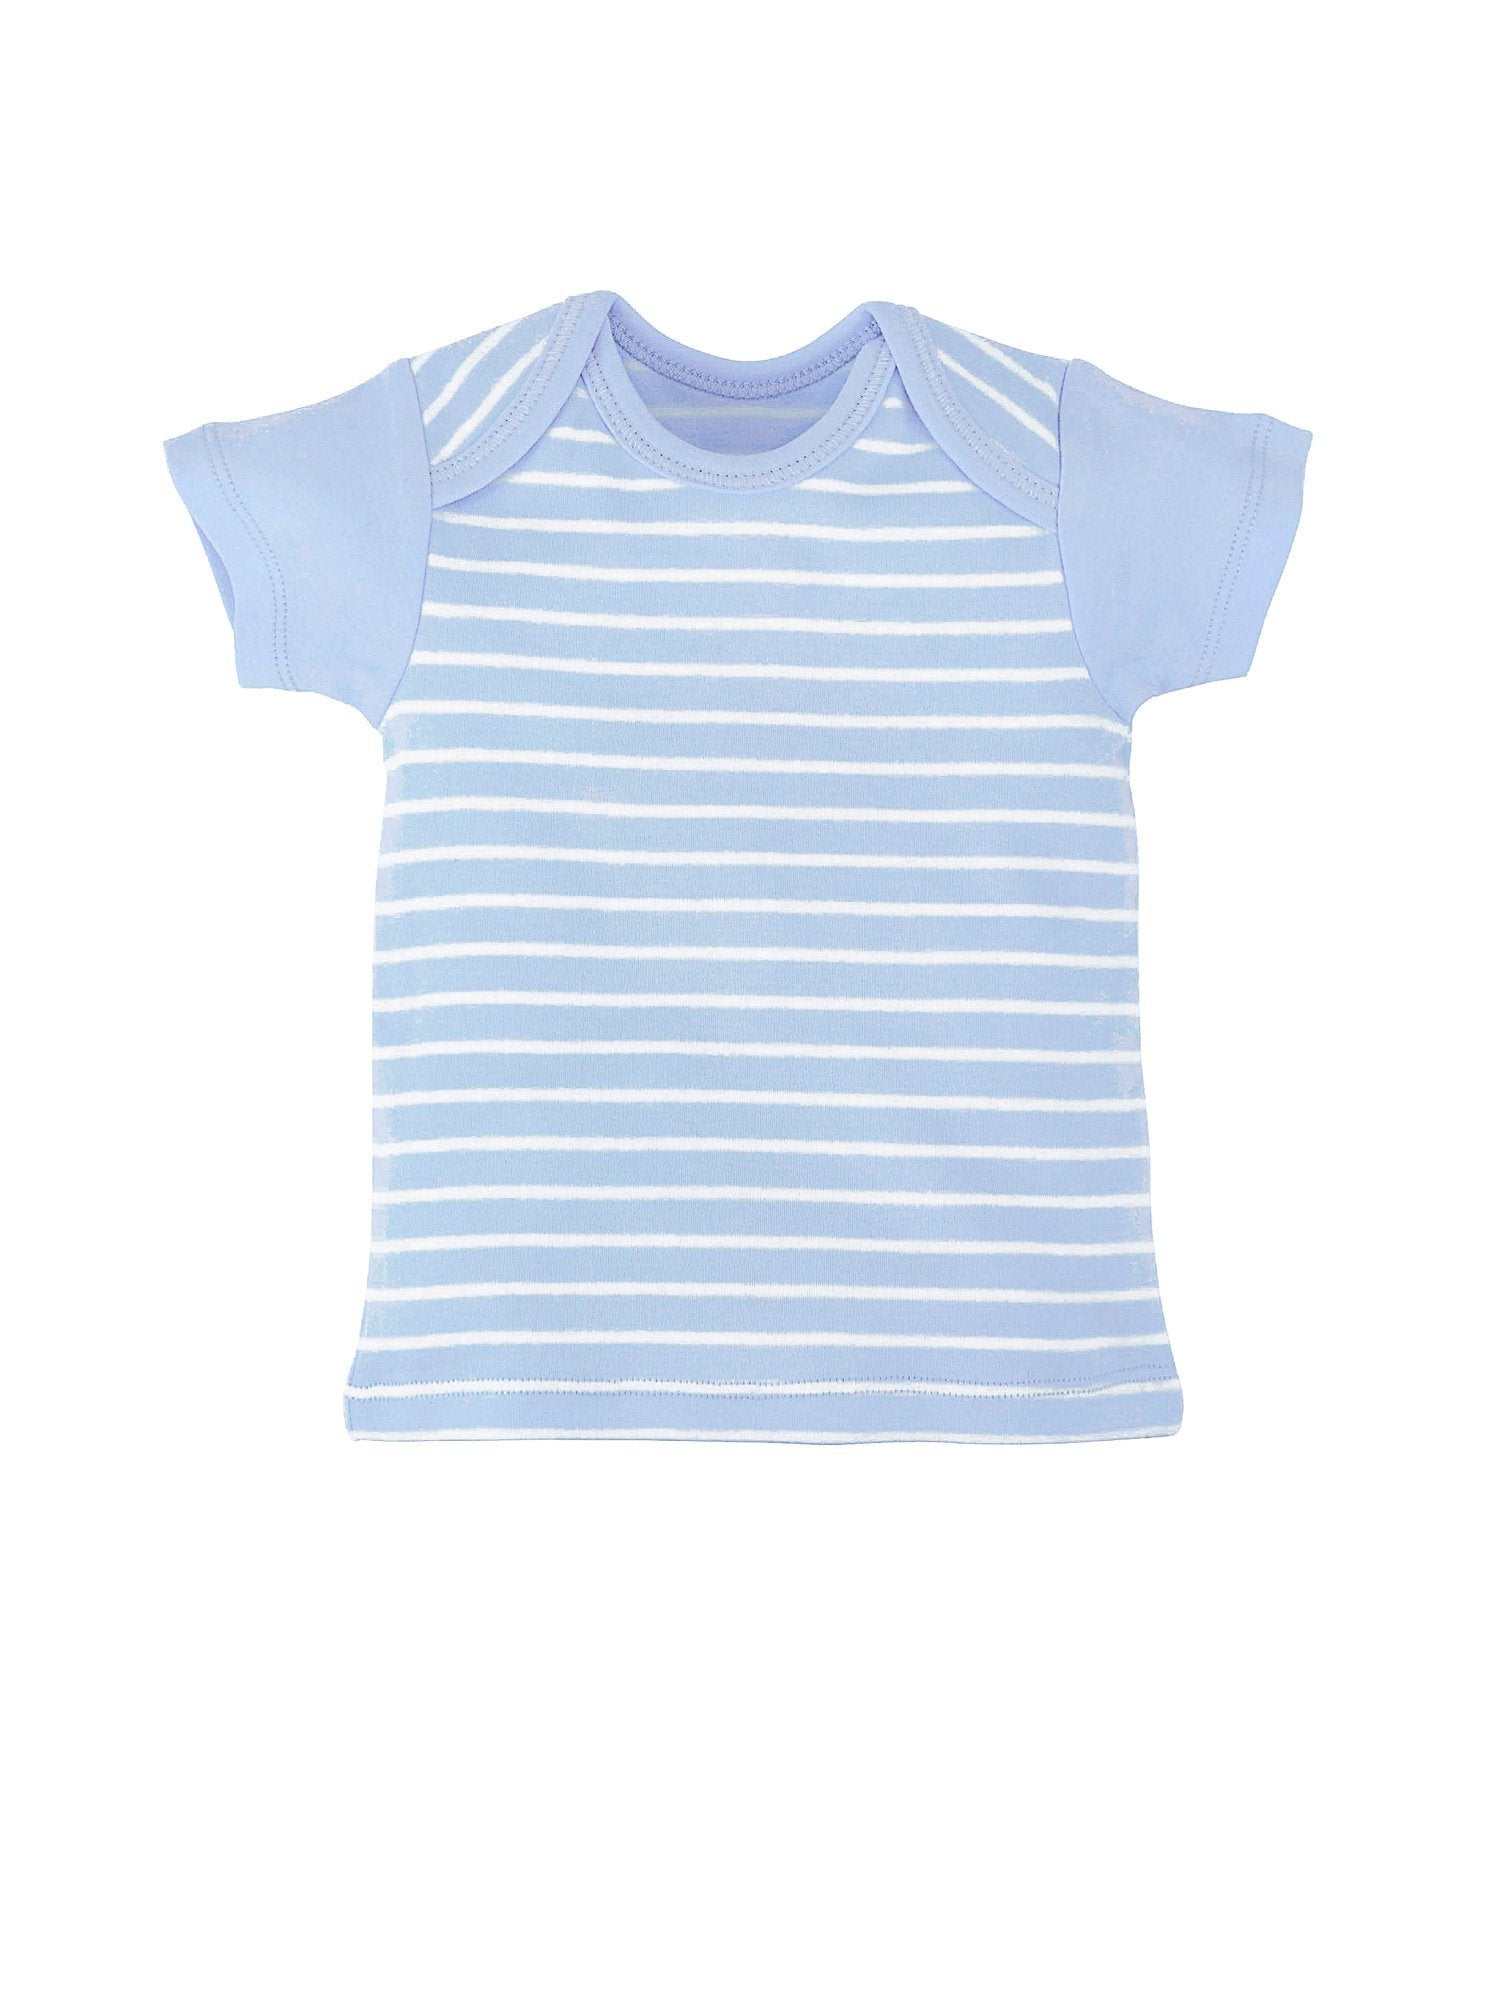 Short Sleeve Baby T Shirt - Organic Boutique